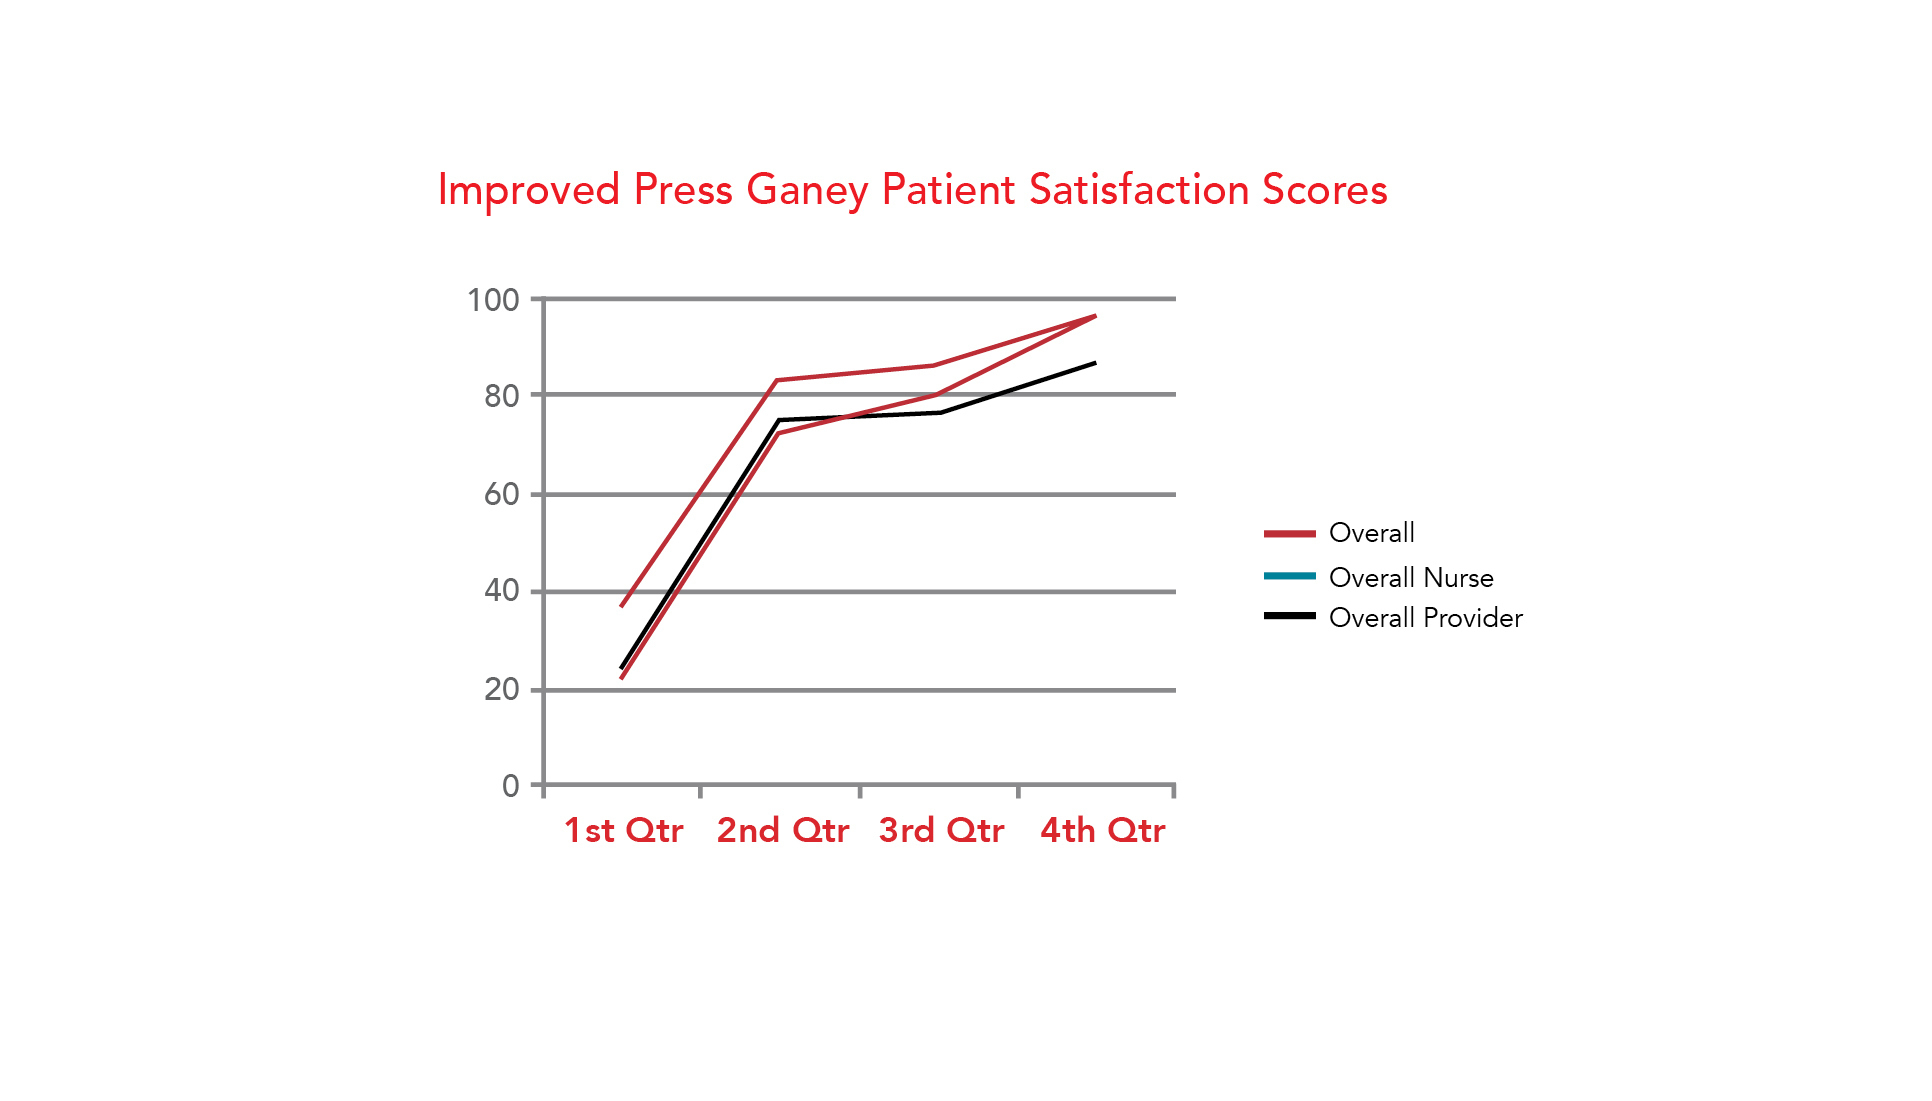 Improved Press Ganey Patient Satisfaction Scores